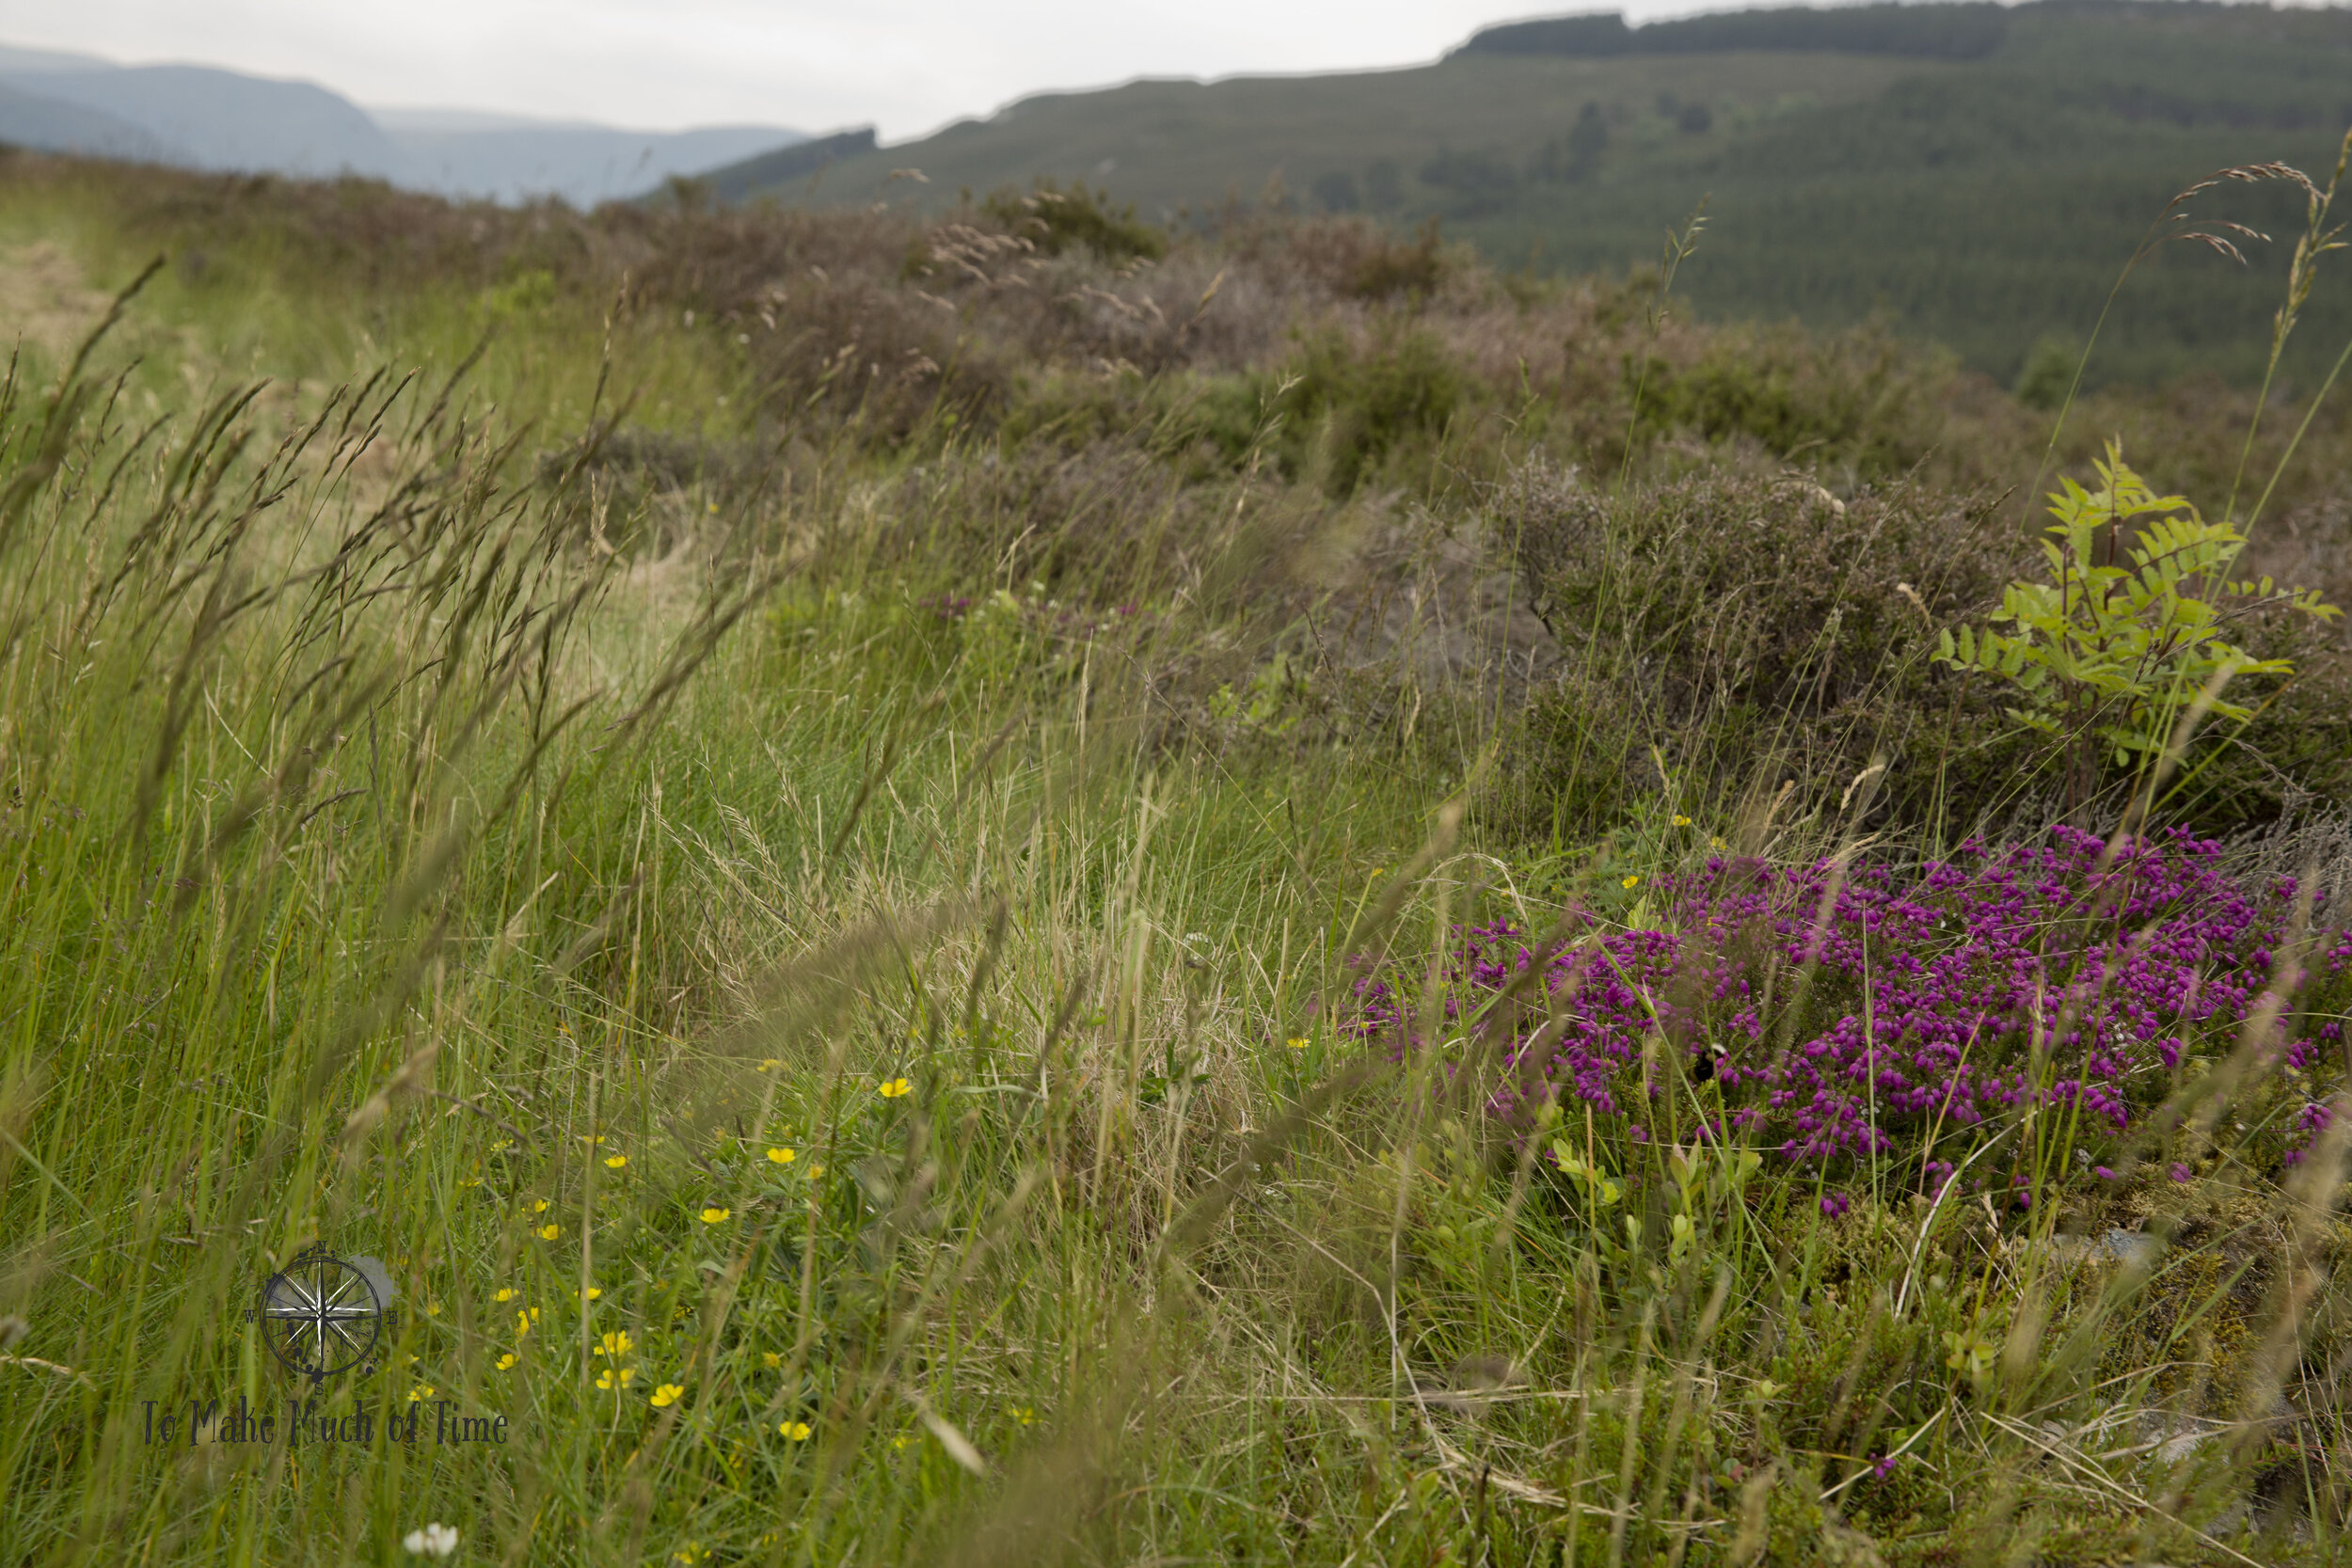 Grasses and heather (mostly heather) surrounded us as we hiked through Heather Moors along River Feshie.